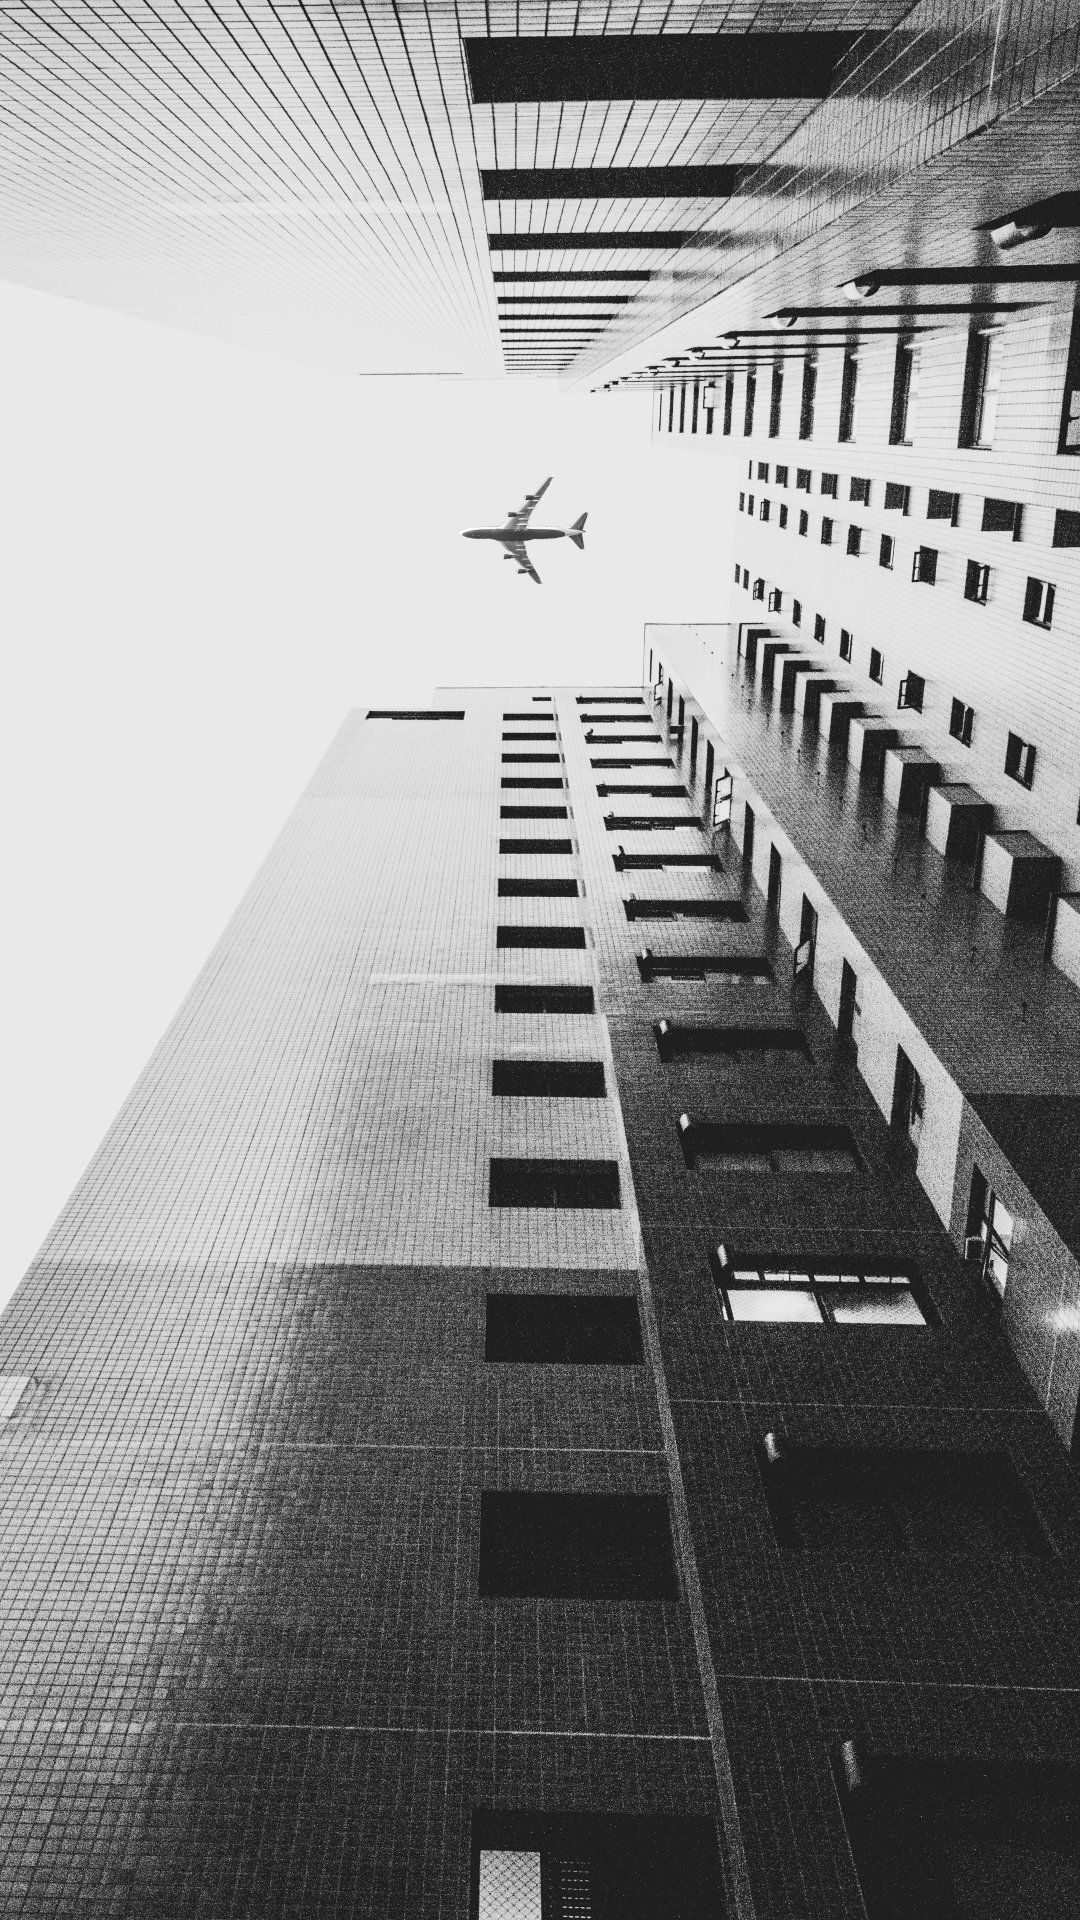 60 Most Downloaded Architecture Iphone Wallpapers Architecture Wallpaper Iphone Wallpaper Photography Iphone Wallpaper Iphone X